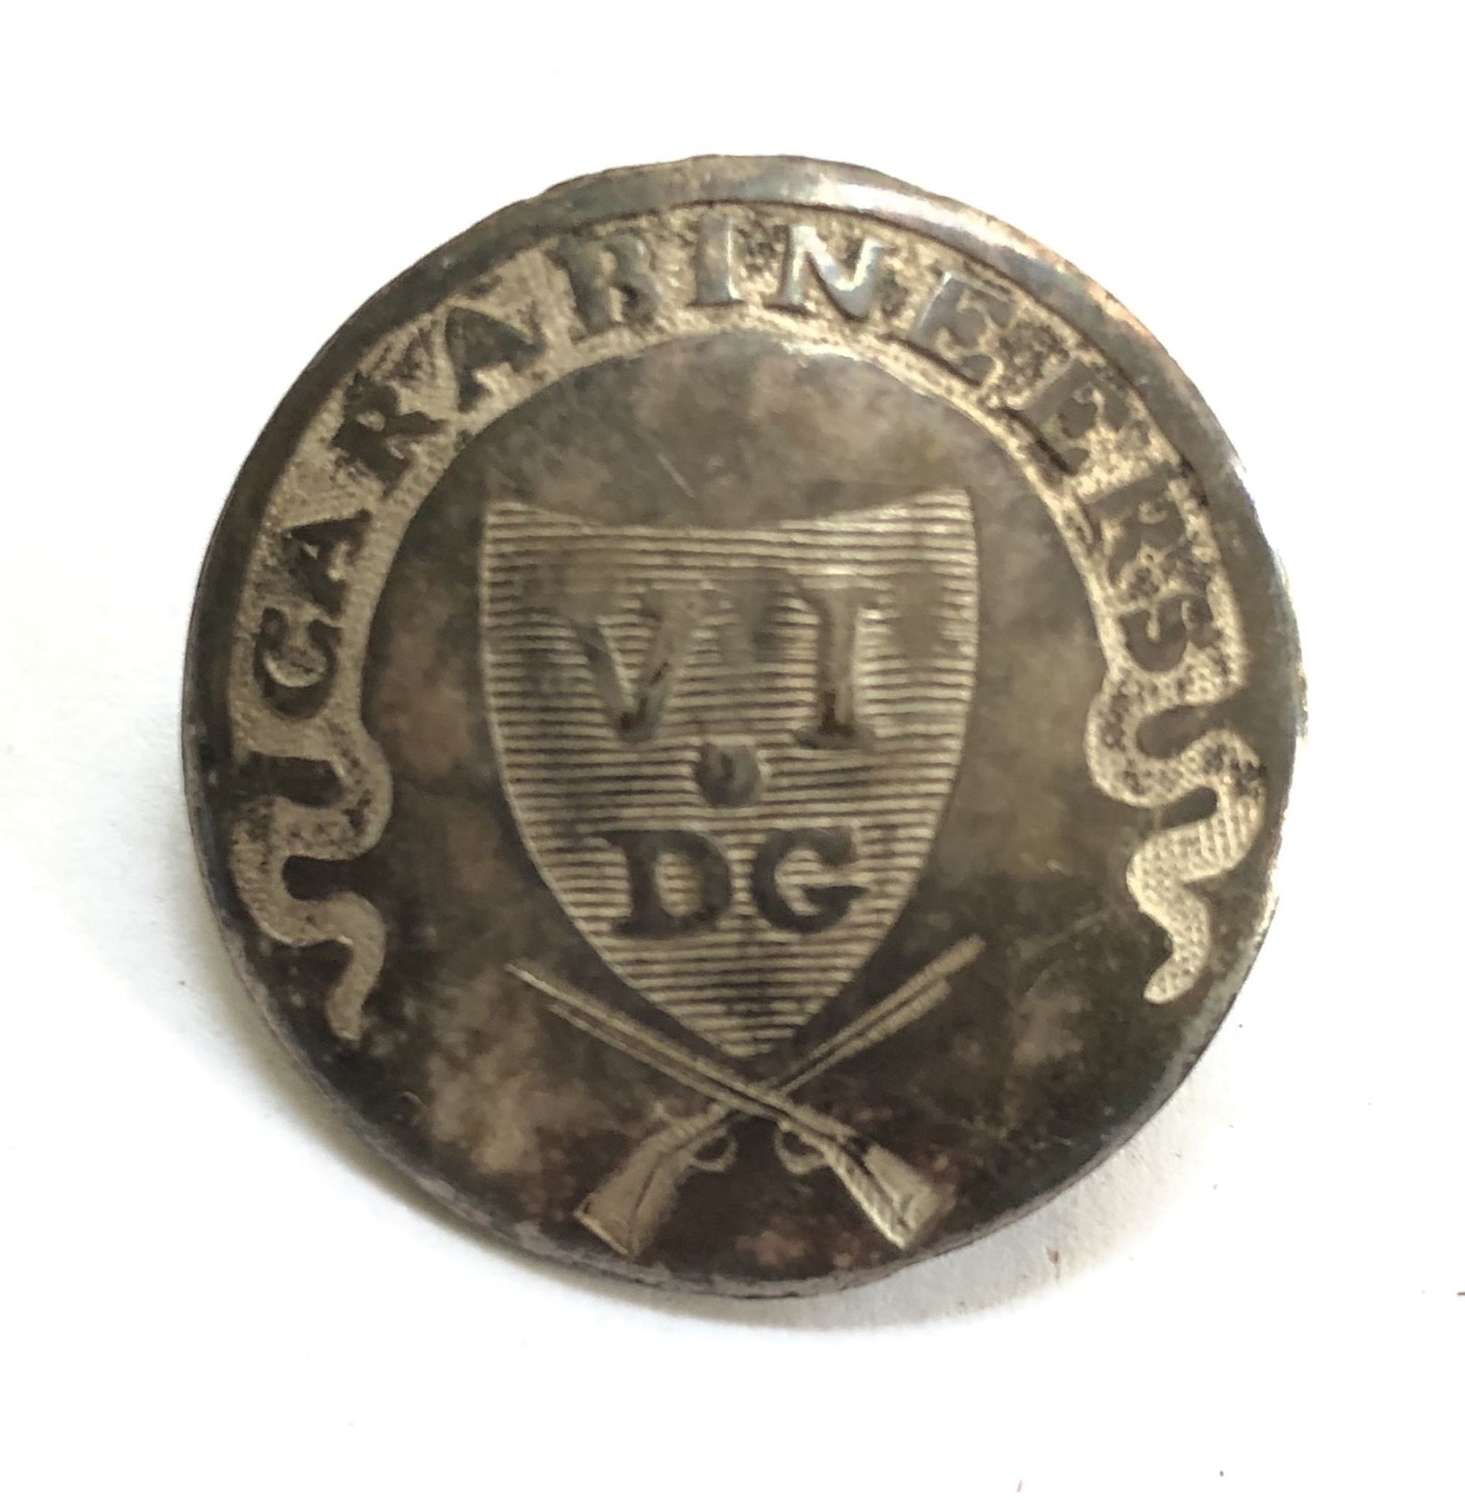 6th Dragoon Guards (Carabiniers) Georgian Officer's coatee button